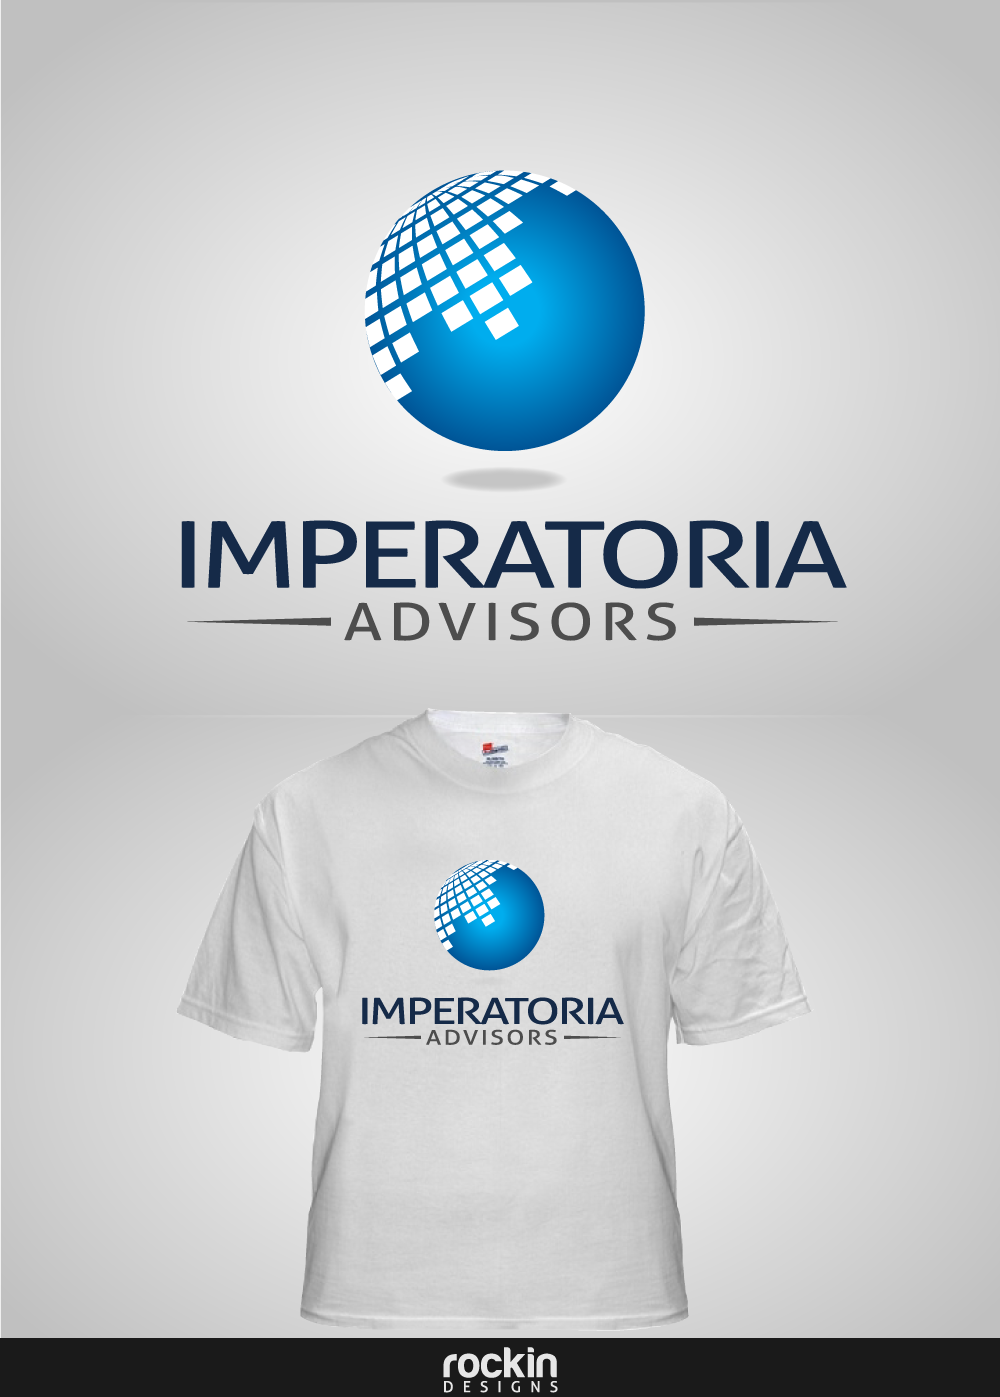 Logo Design by rockin - Entry No. 93 in the Logo Design Contest Unique Logo Design Wanted for Imperatoria Advisors.